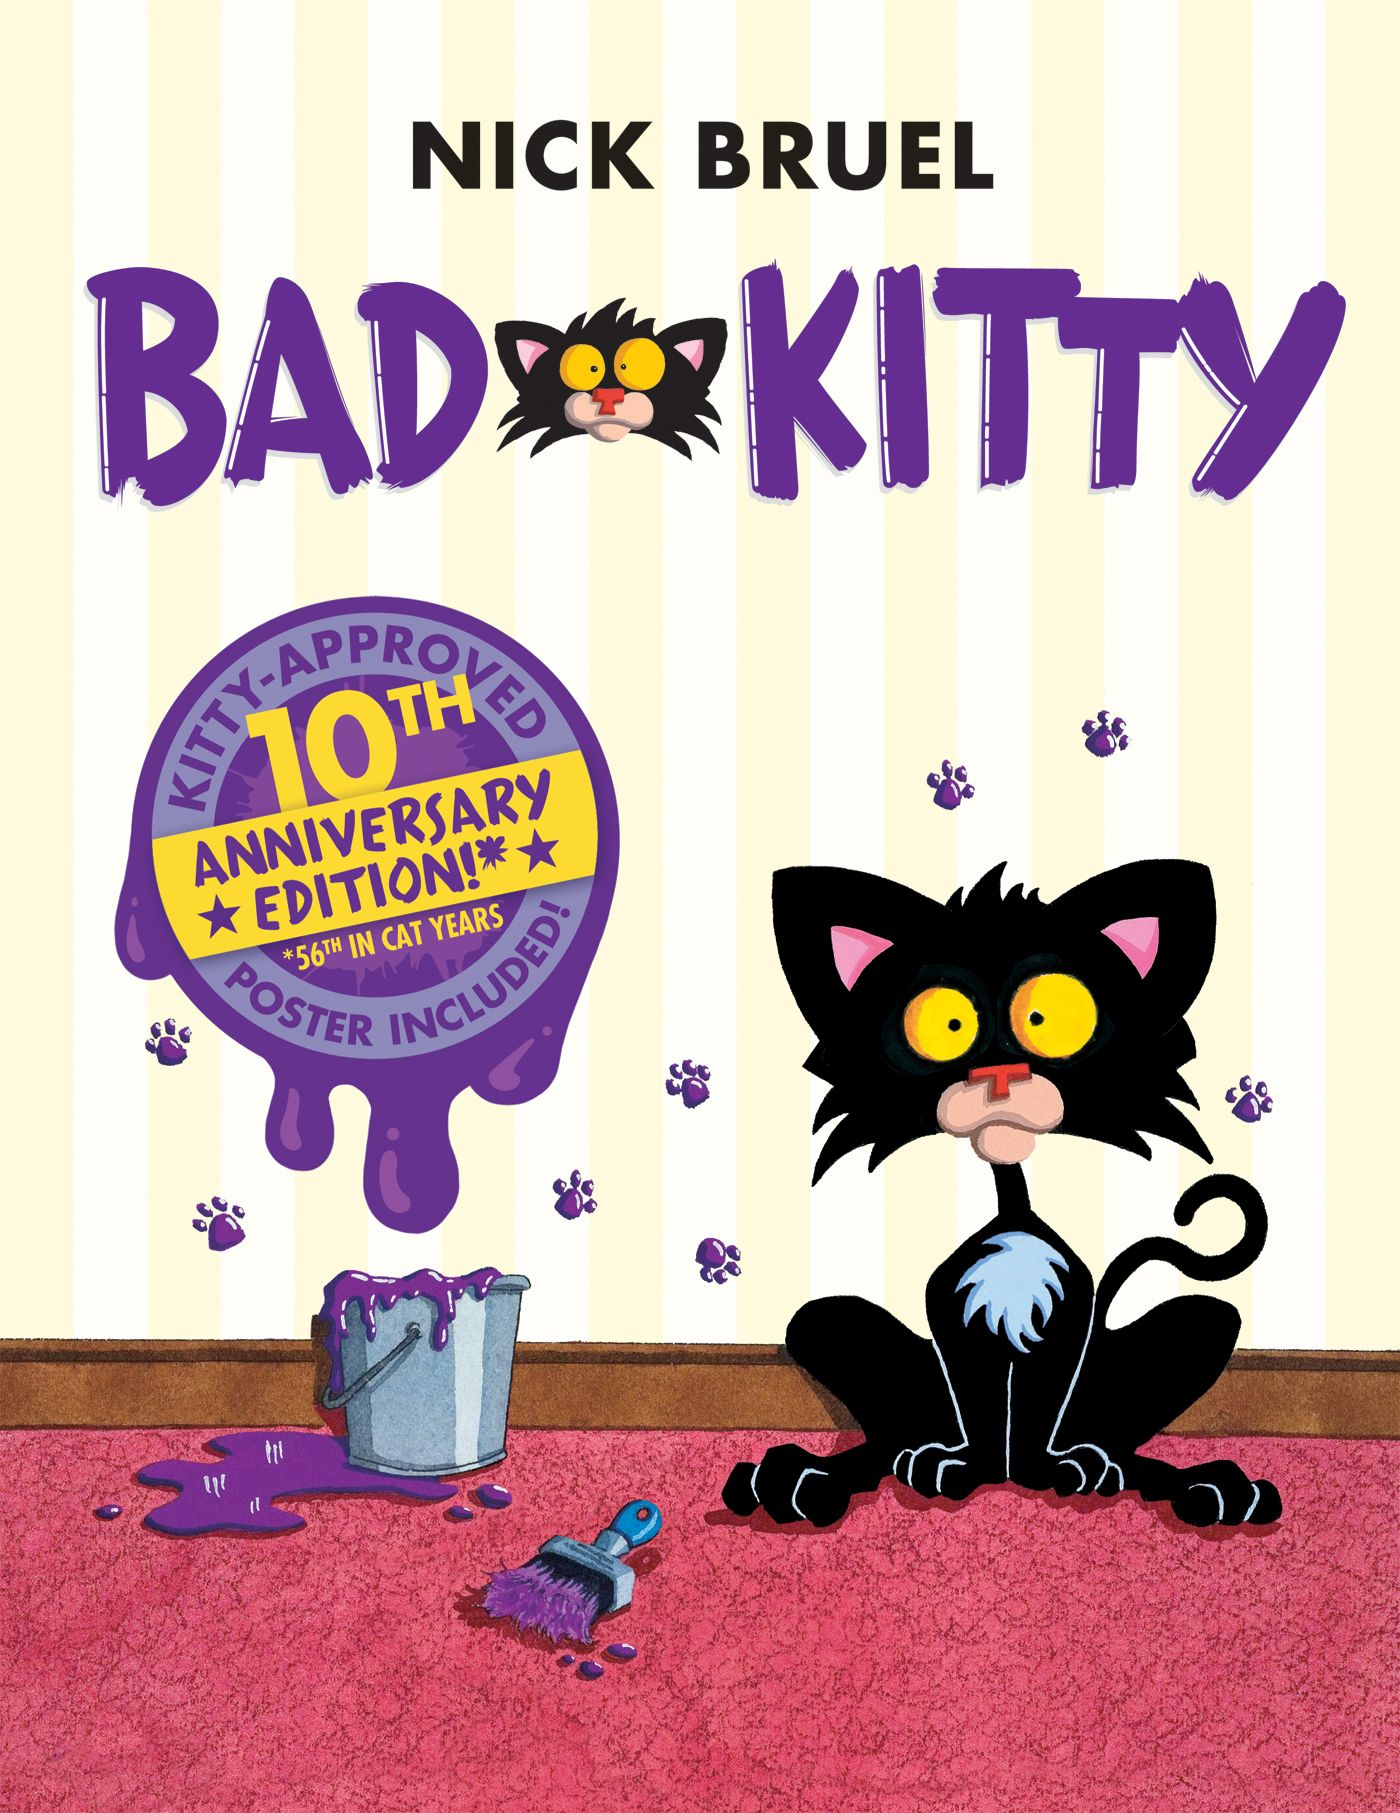 19 Chapter Books With Free Printable Activities Brightly Bad Cats Free Printable Activities Childrens Publishing